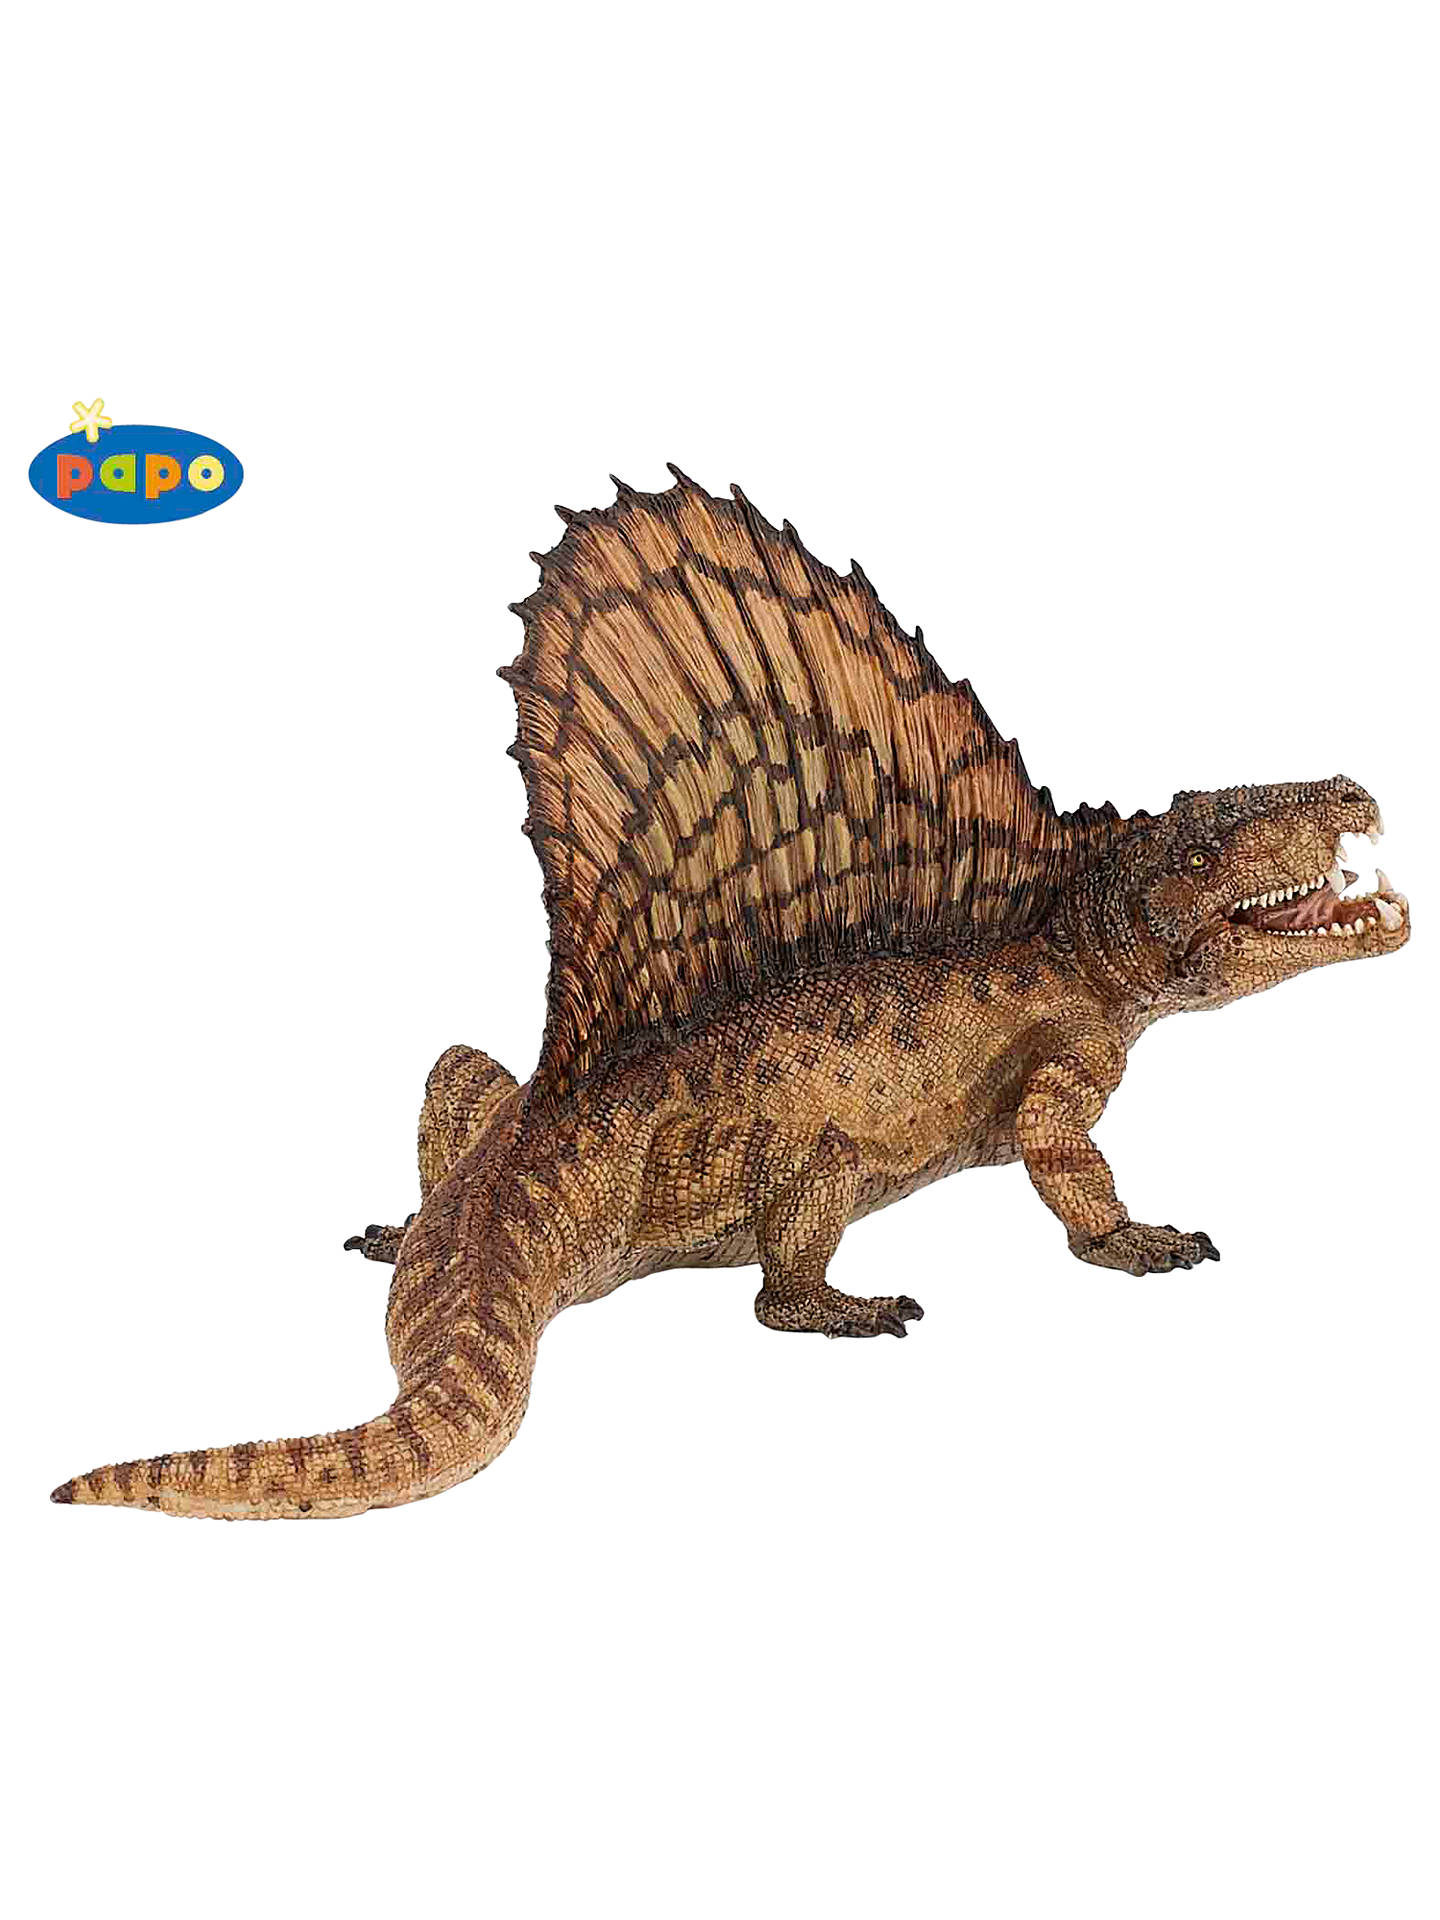 BuyPapo Figurines: Dimetrodon Online at johnlewis.com